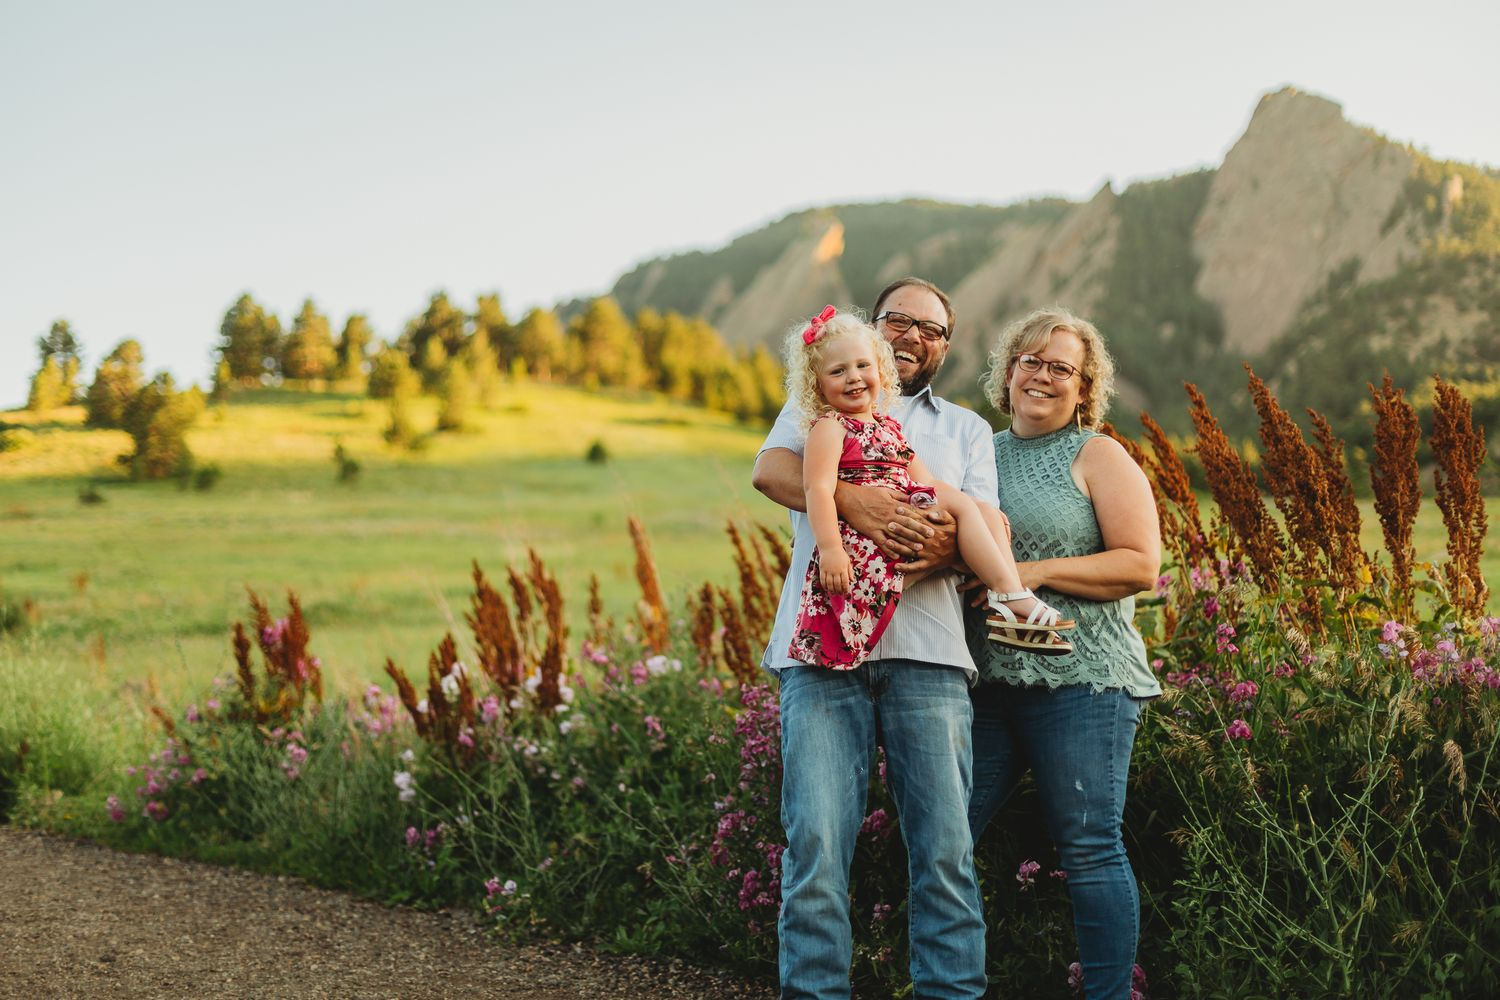 Family Photography Session at Chautauqua Park in Boulder, Colorado by Natalie Dyer Photography.